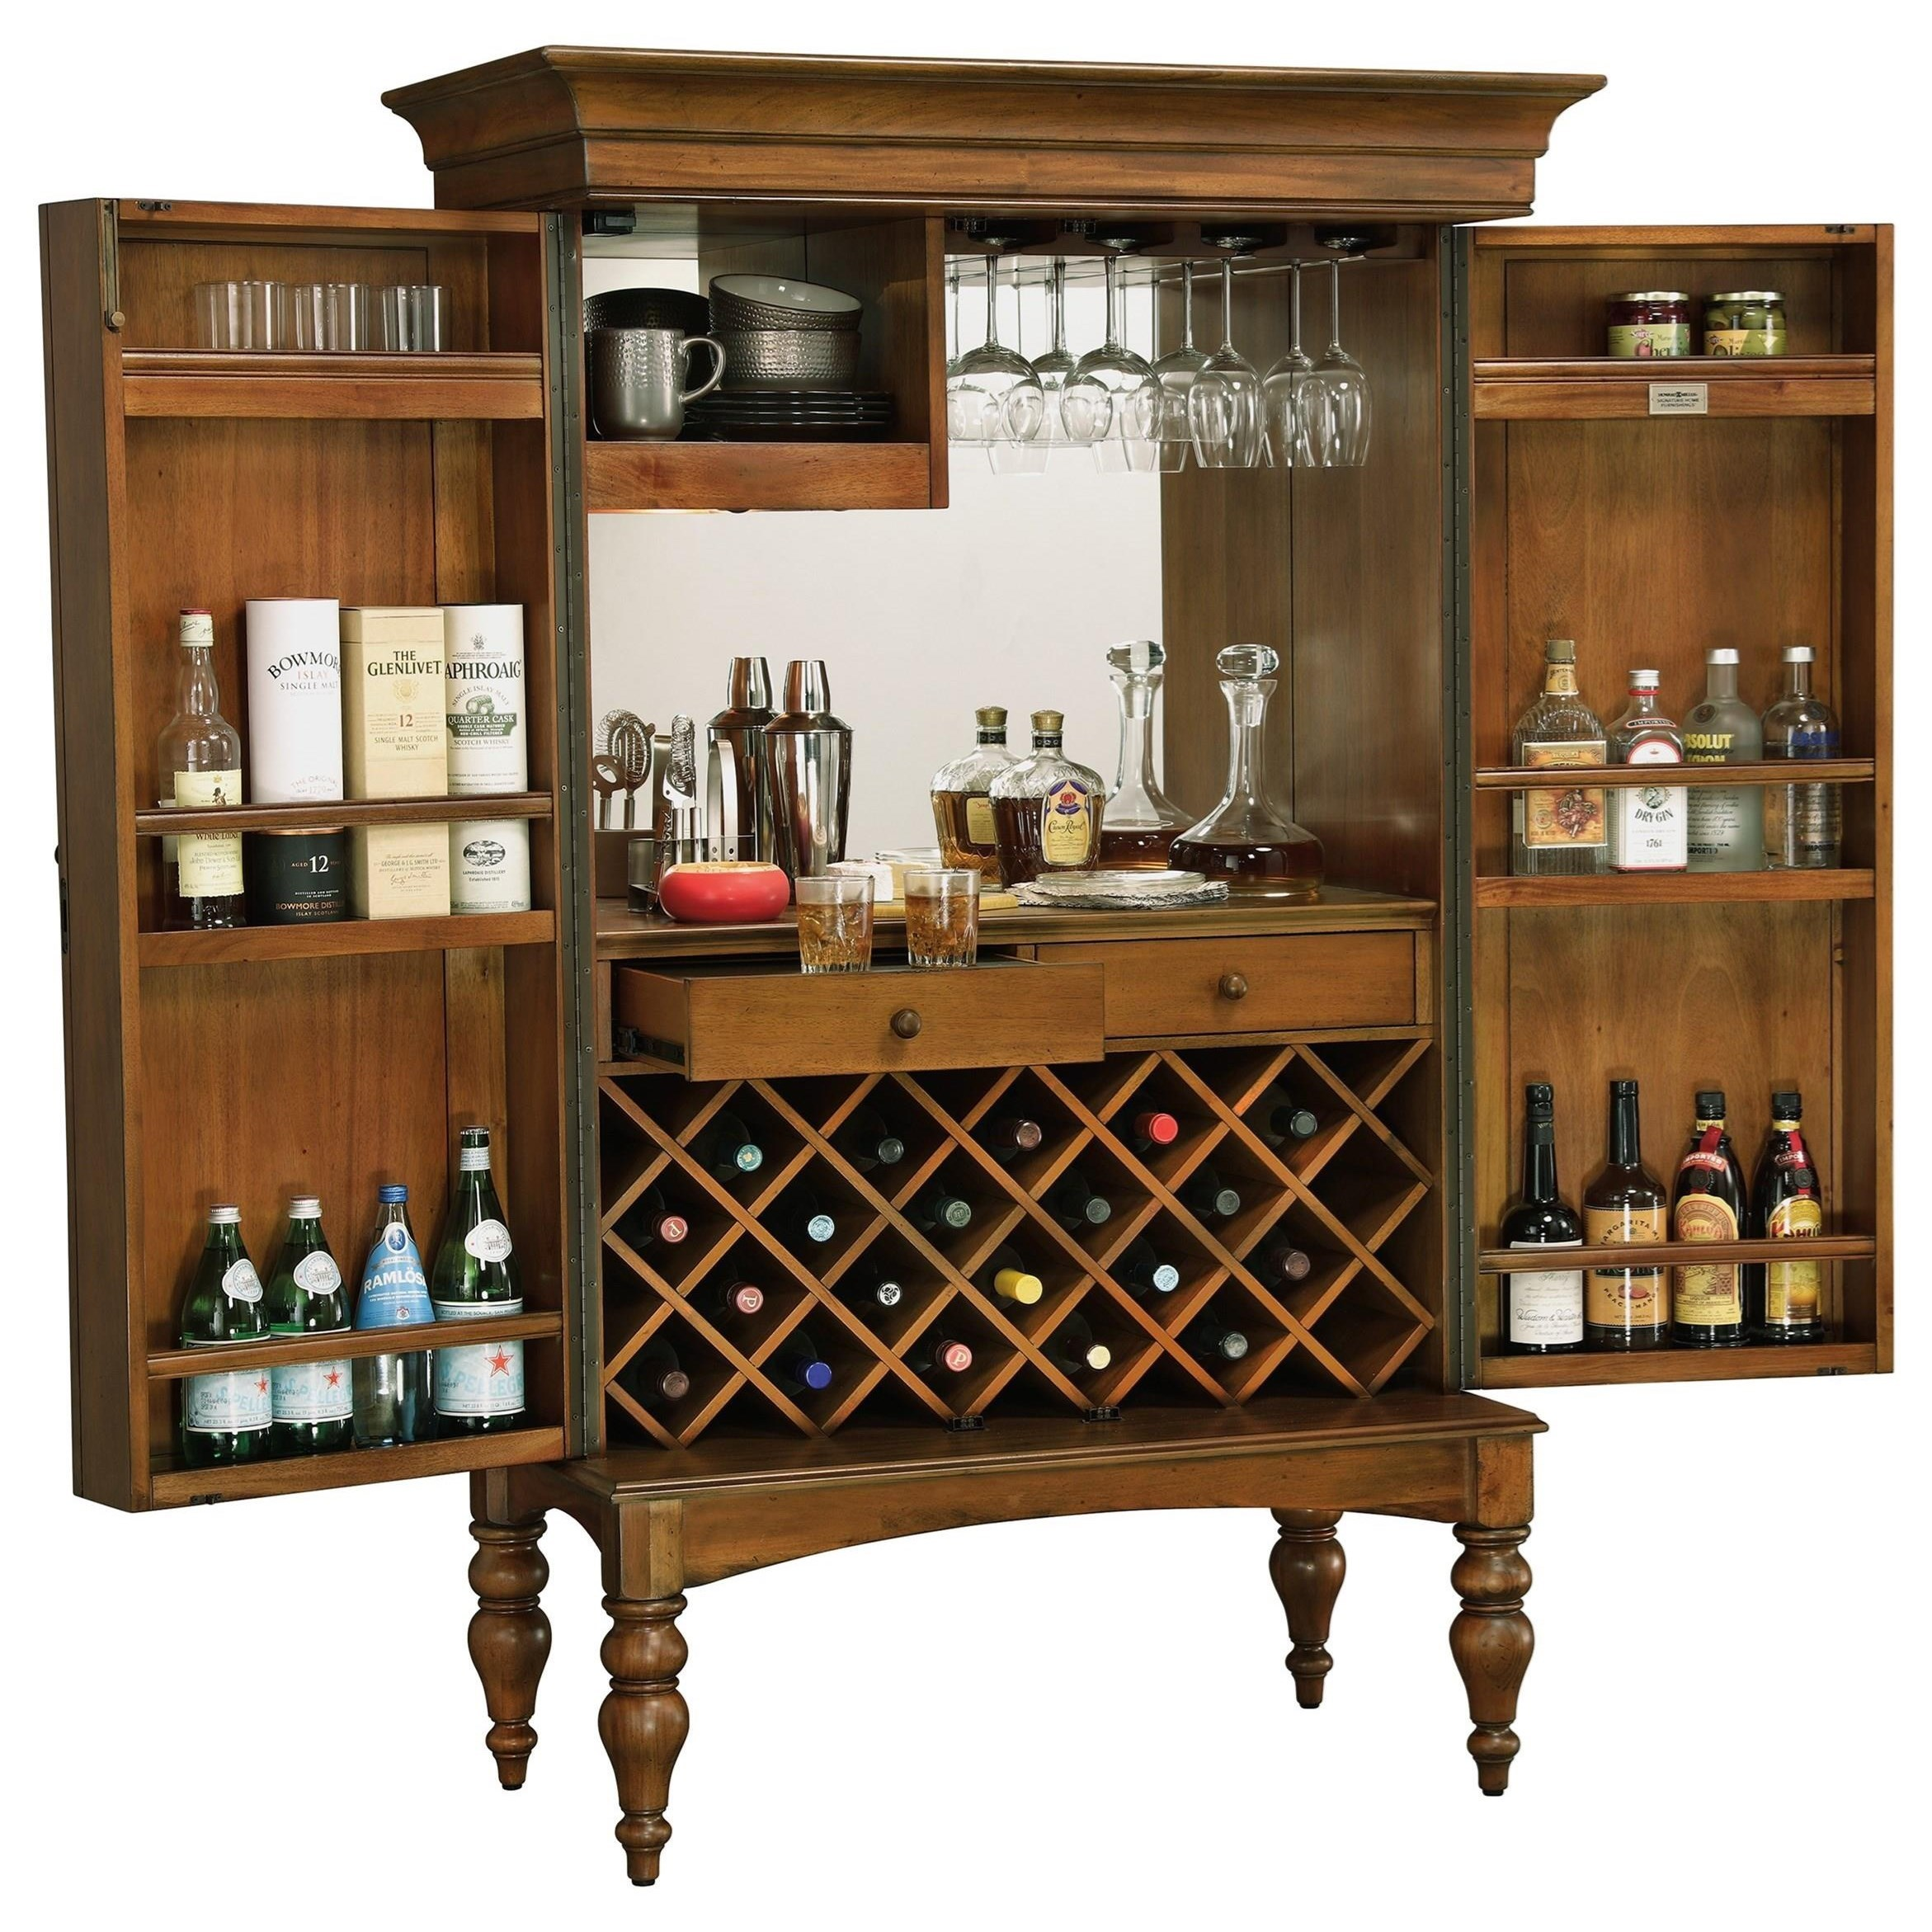 Howard miller wine bar furnishings toscana wine bar Wine bar furniture